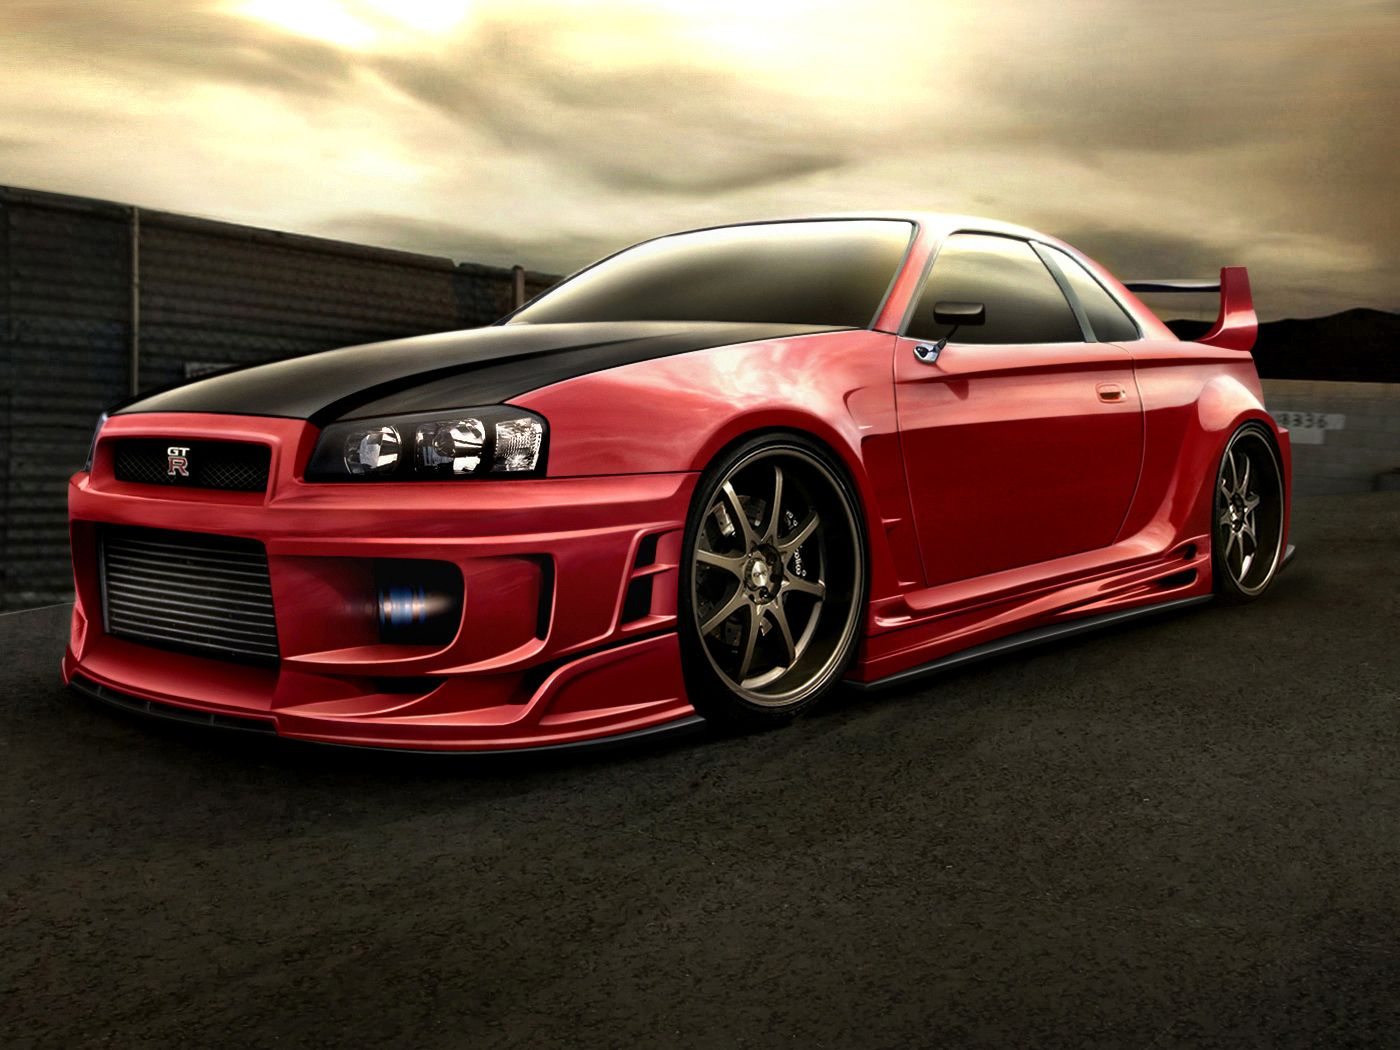 Nissan Gt R Wallpaper Hd Download Nissan Skyline Gtr Red Wallpaper